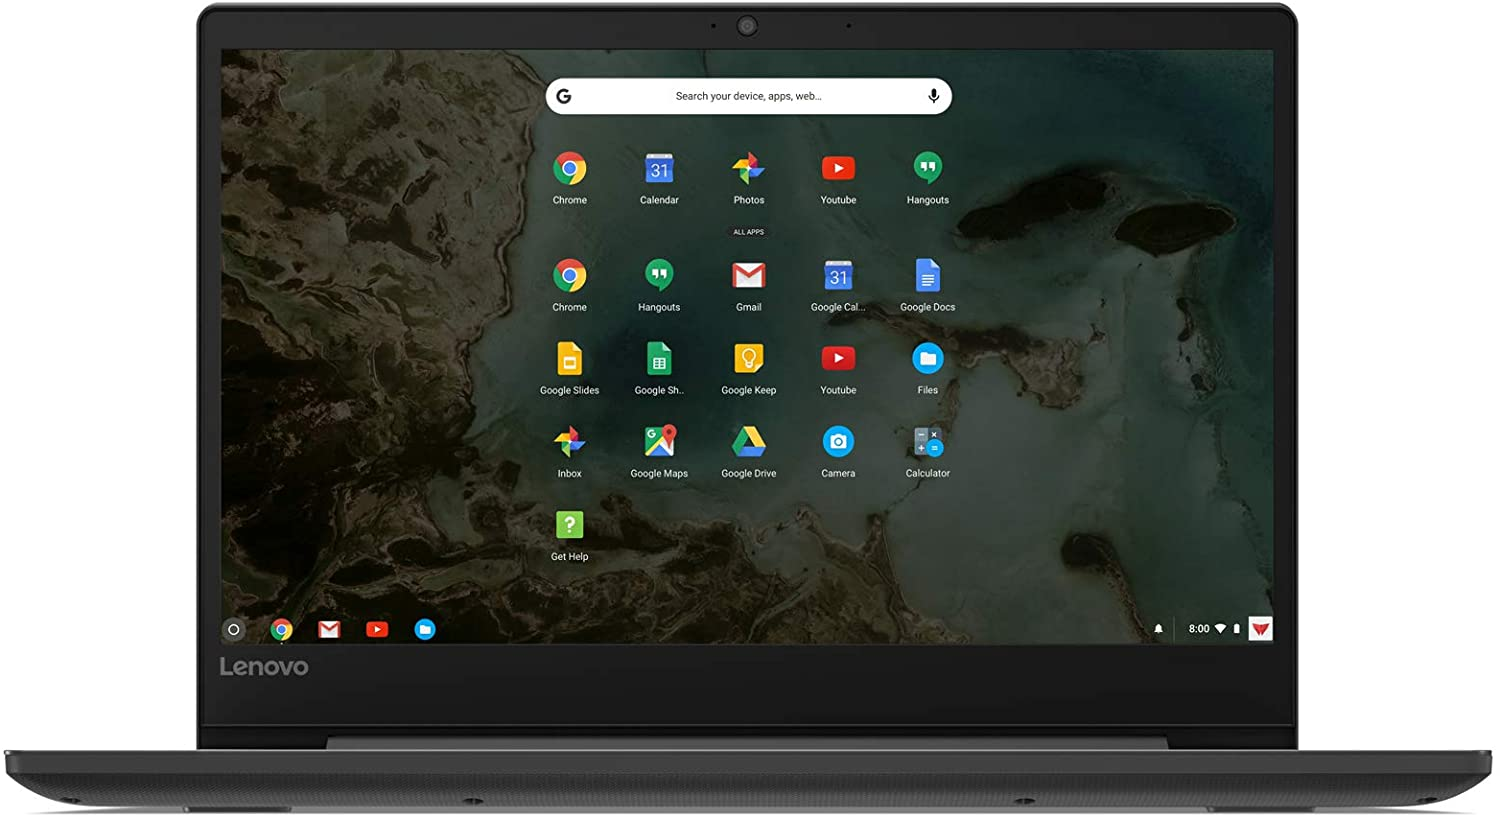 Lenovo Chromebook S330 - Amazon